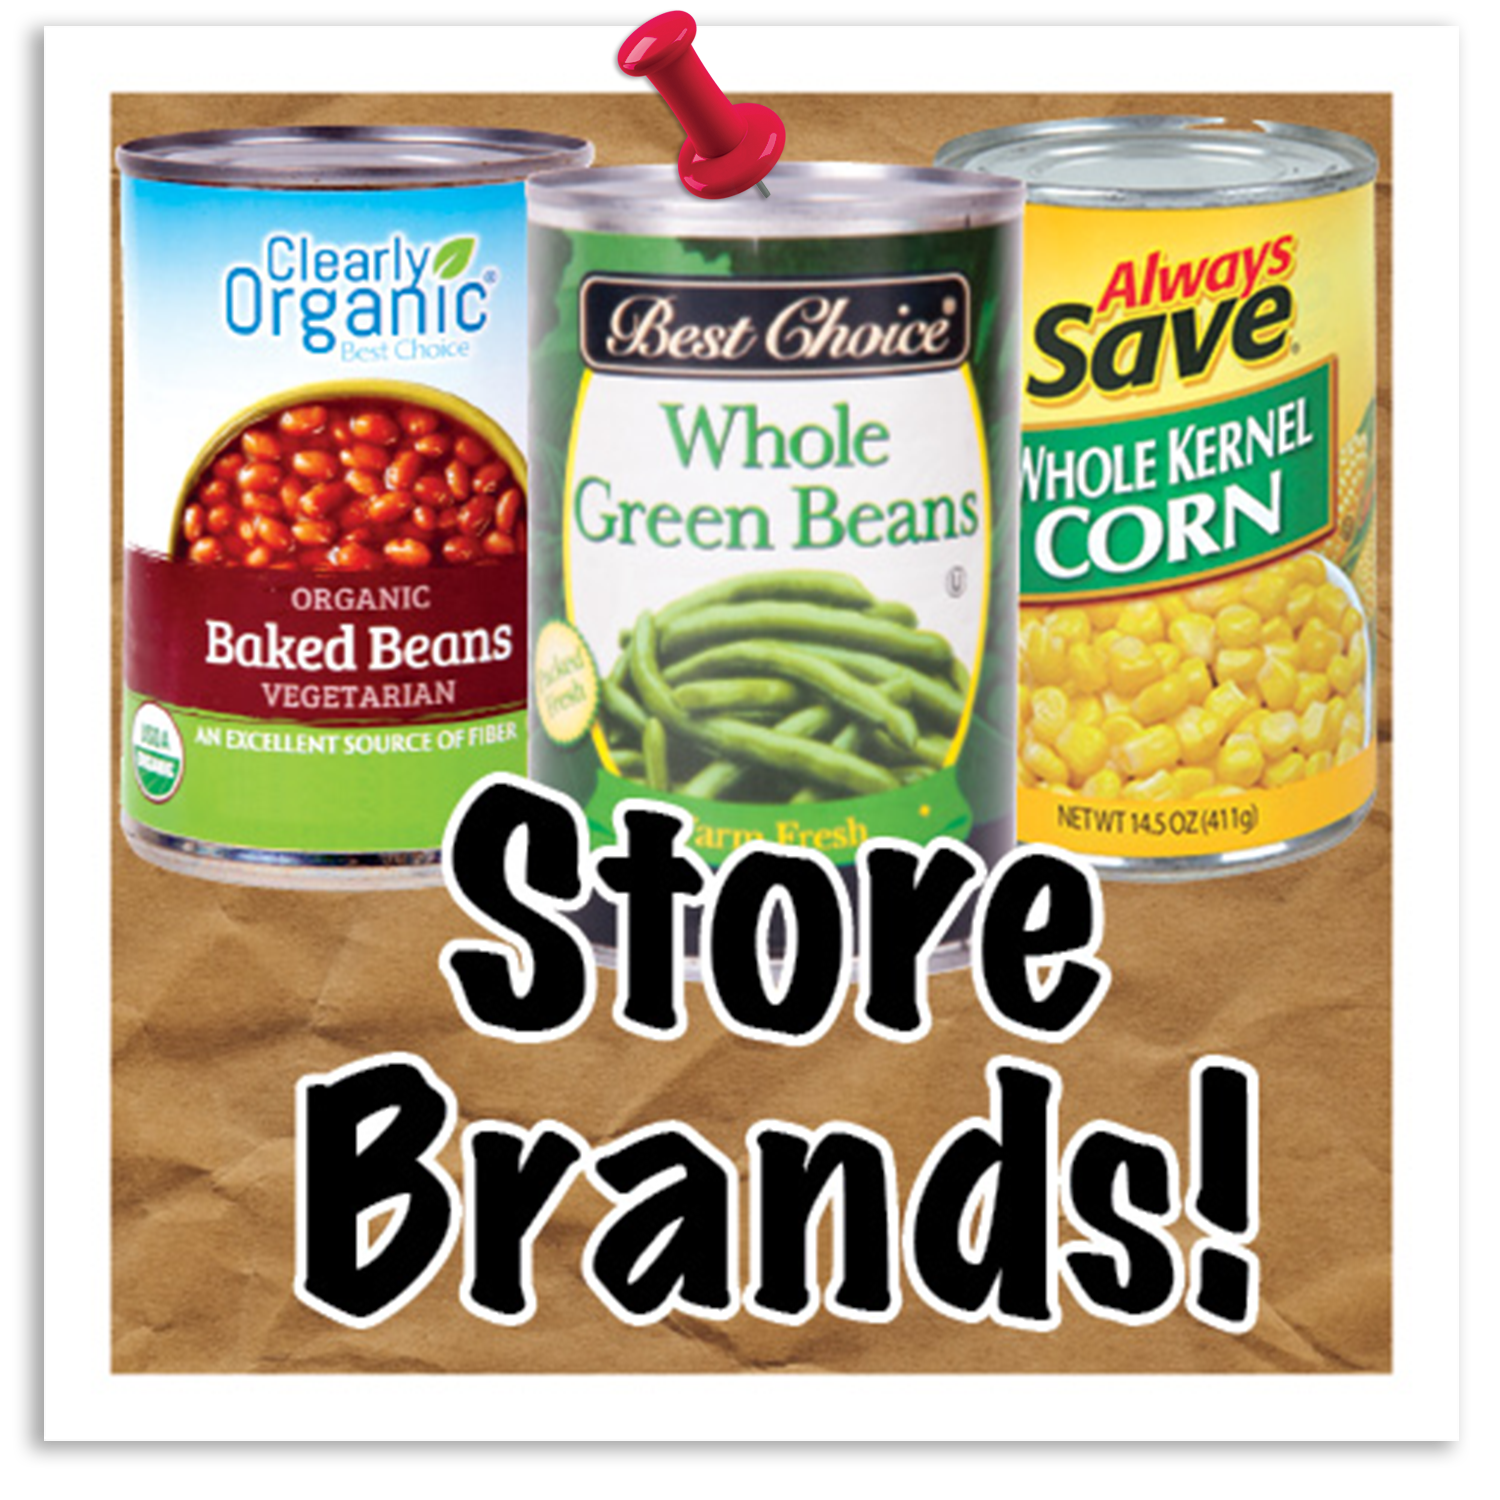 Piggly Wiggly Store Brands